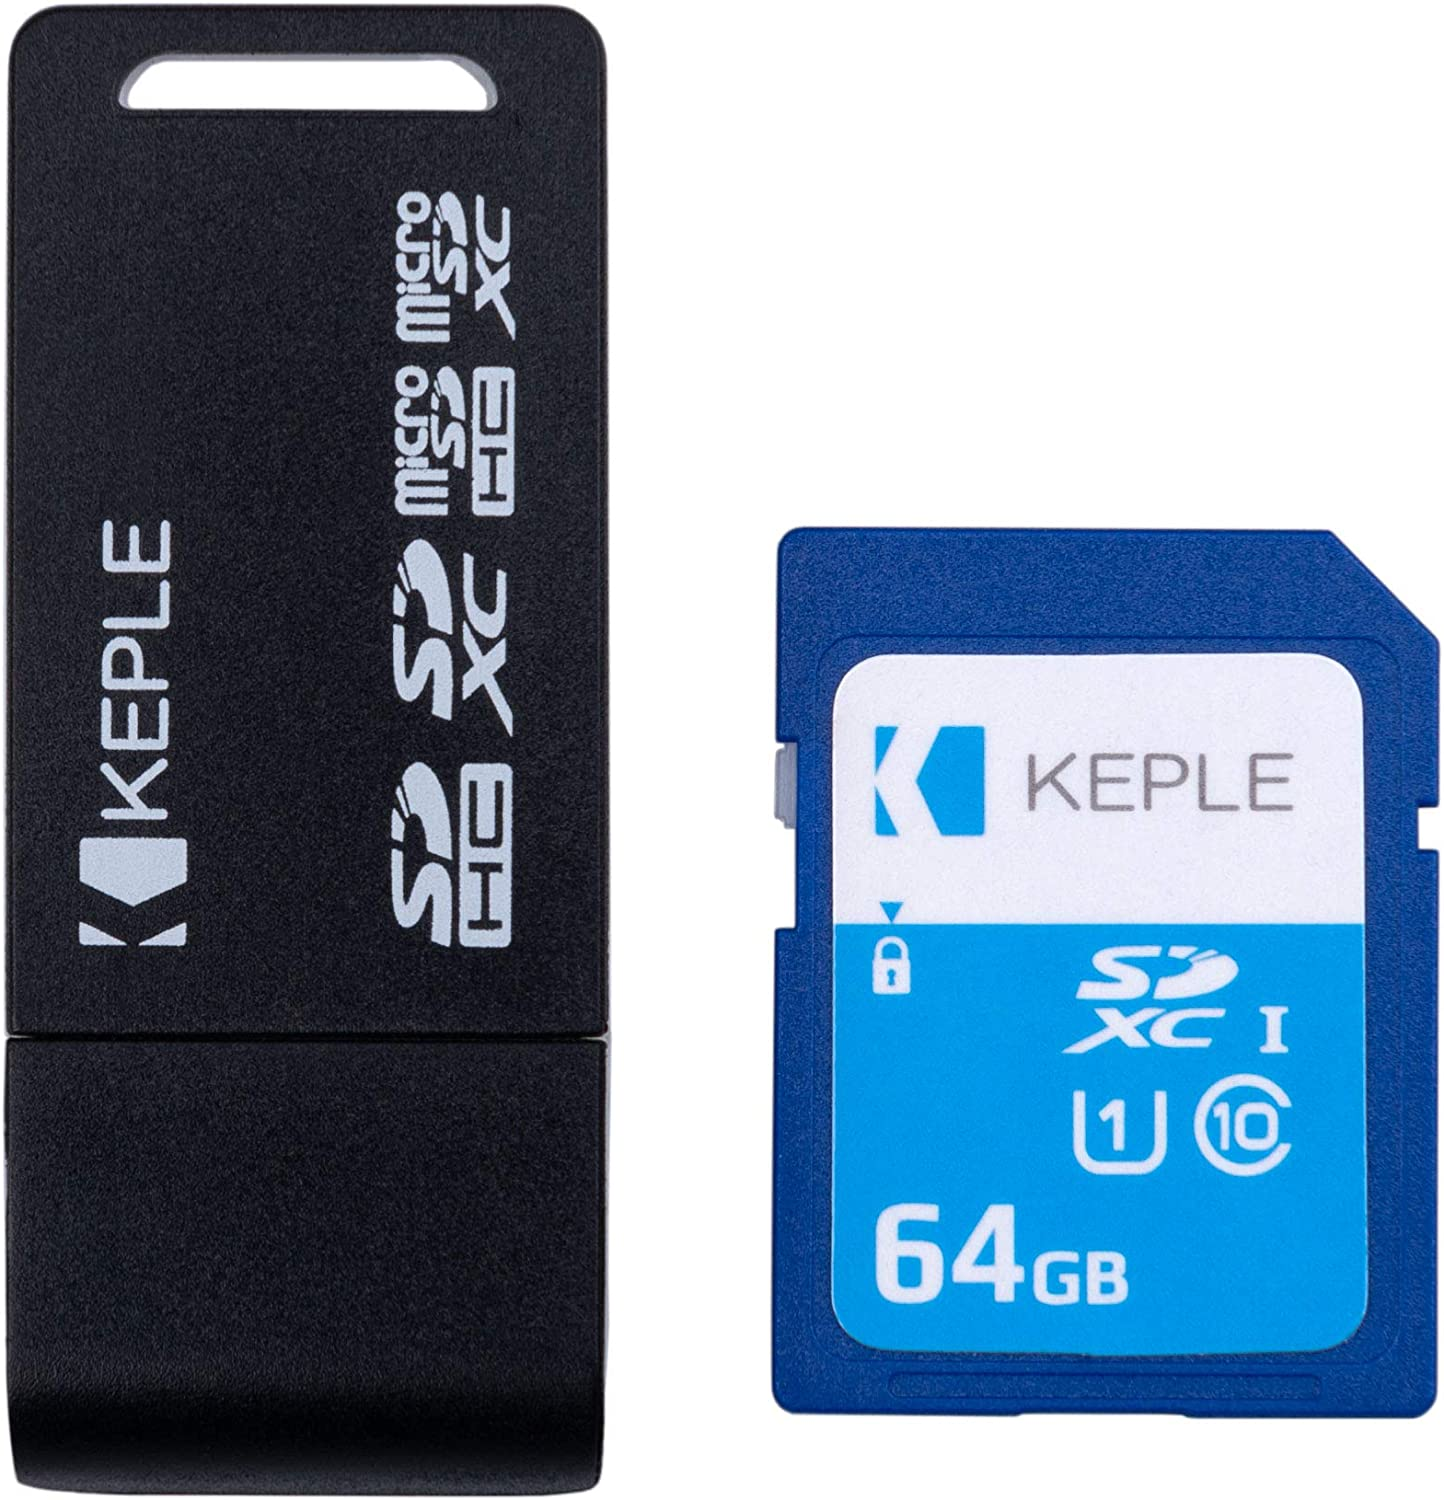 W100 W300 B600 A100 A300 A900 A1000 Digital Camera SLR L26 L810 L610 L820 L28 16GB SD Memory Card with USB Reader Adapter Compatible with Nikon COOLPIX S6900 S7000 S9900 S33 S32 S31 S01 S02 S6800